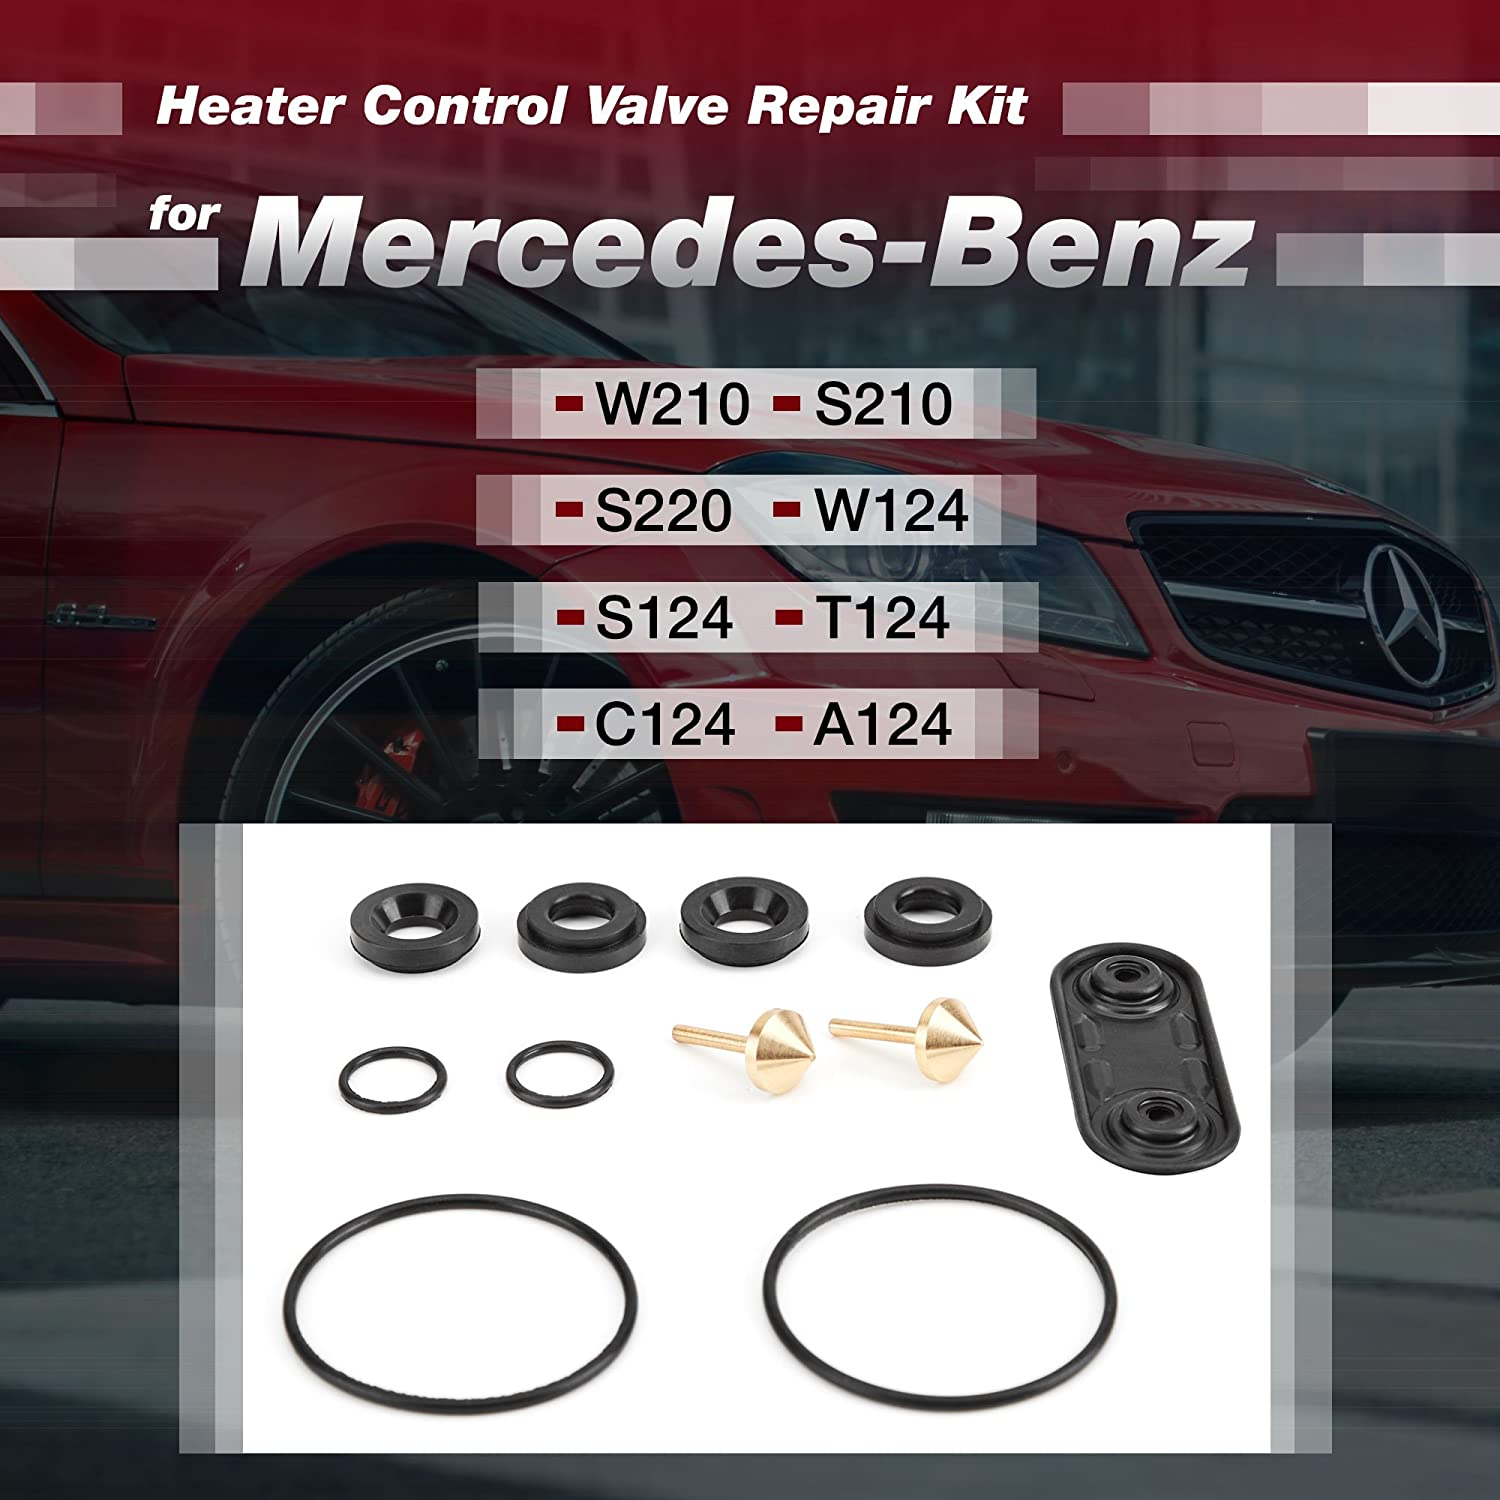 Amazon.com: Heater Valve Repair Kit Compatible with Mercedes-Benz Cars - Set of Heater Repair Parts for Self-Repair - W210, W220, W124, W202: Automotive